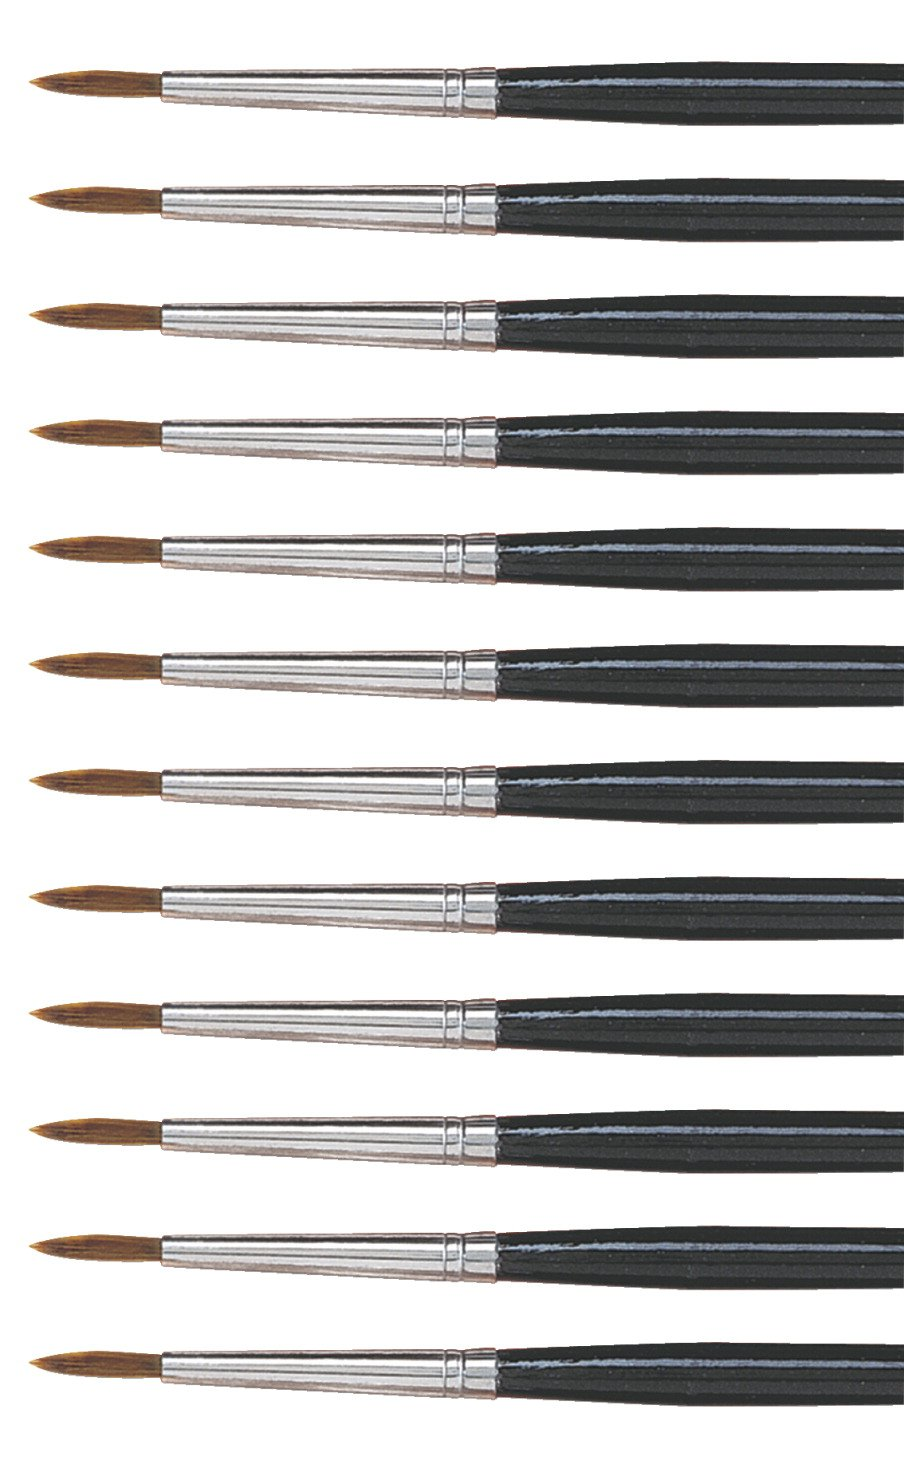 Dynasty 5800 Round Camel Hair Short Enameled Wood Handle Watercolor Paint Brush, Size 5, 11/64 in Hair, Black, Pack of 12 by DYNASTY